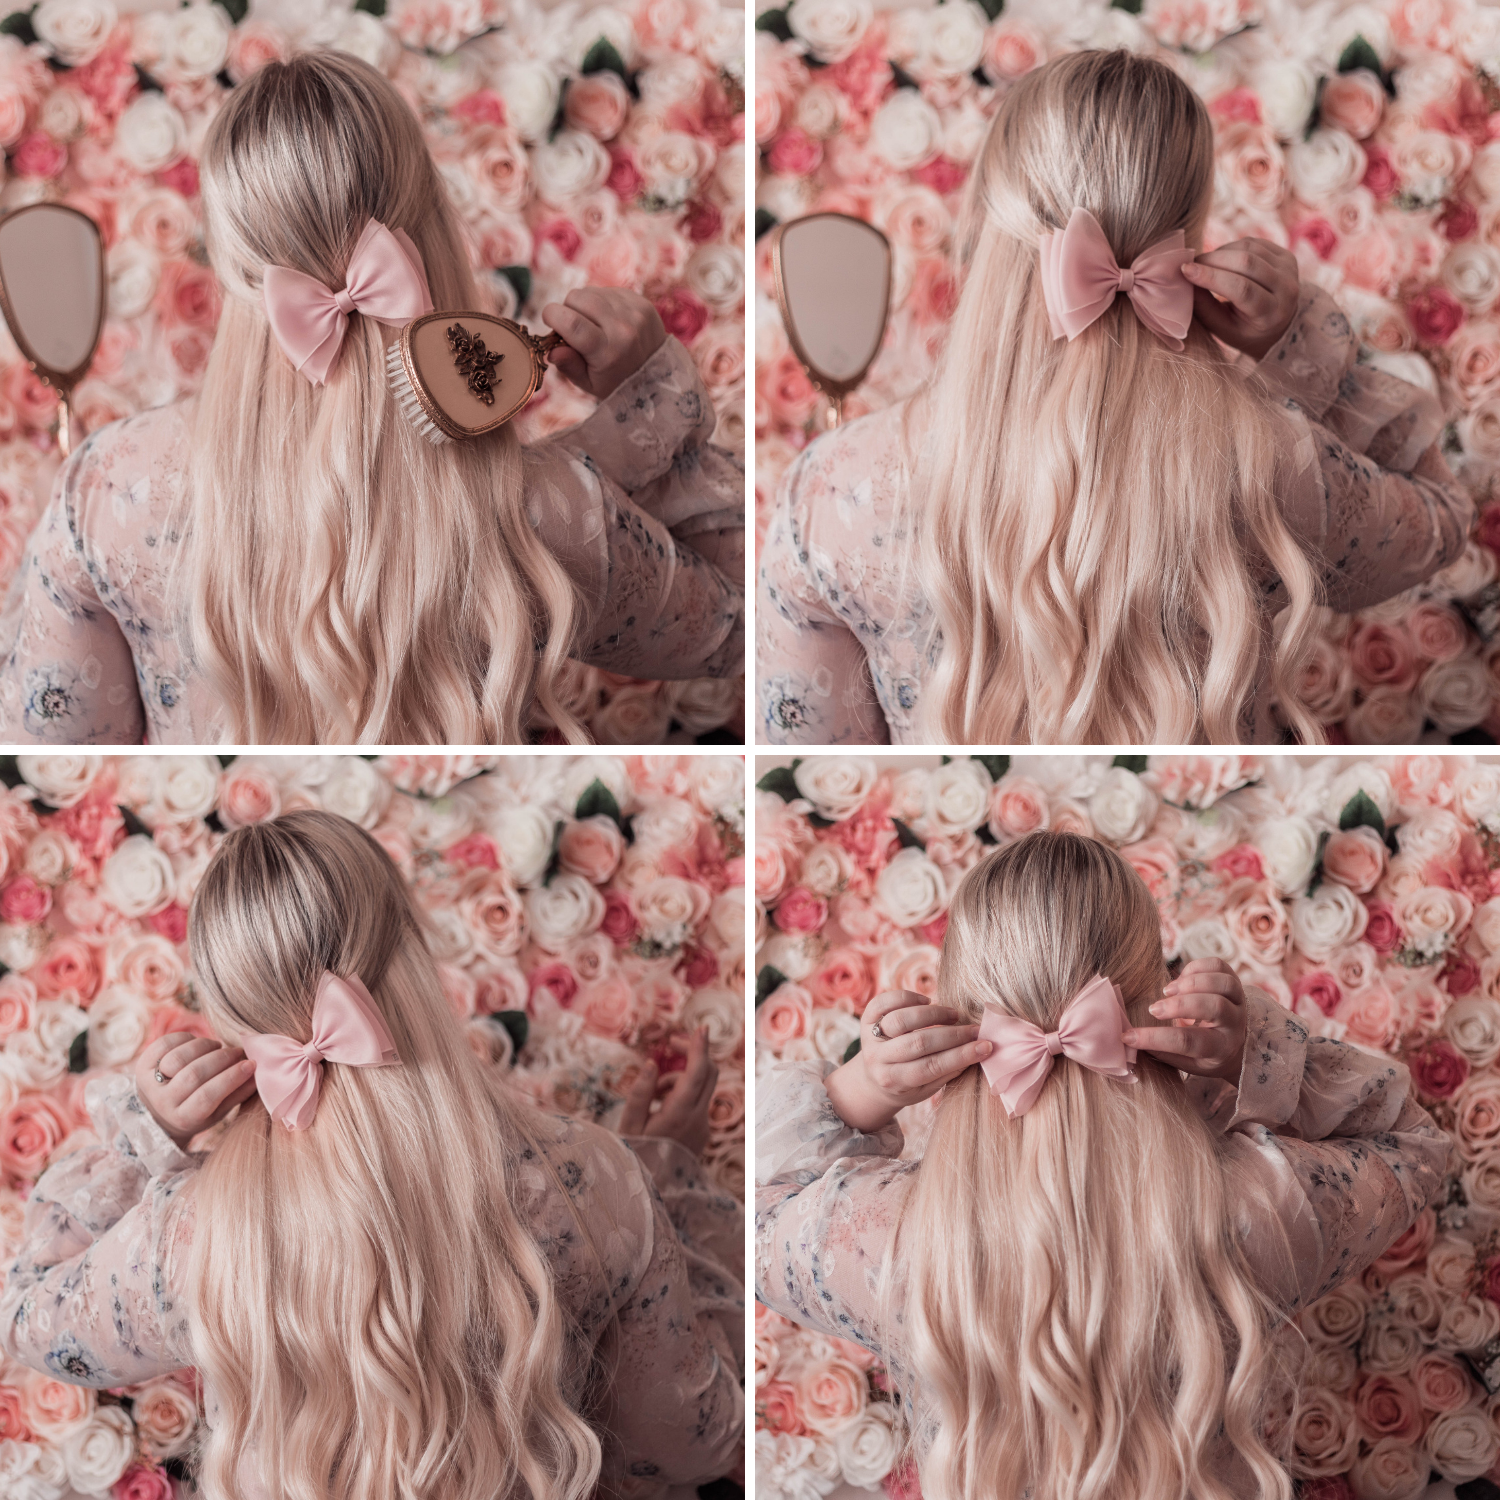 Hair Accessory Trends: What I'm Wearing Now